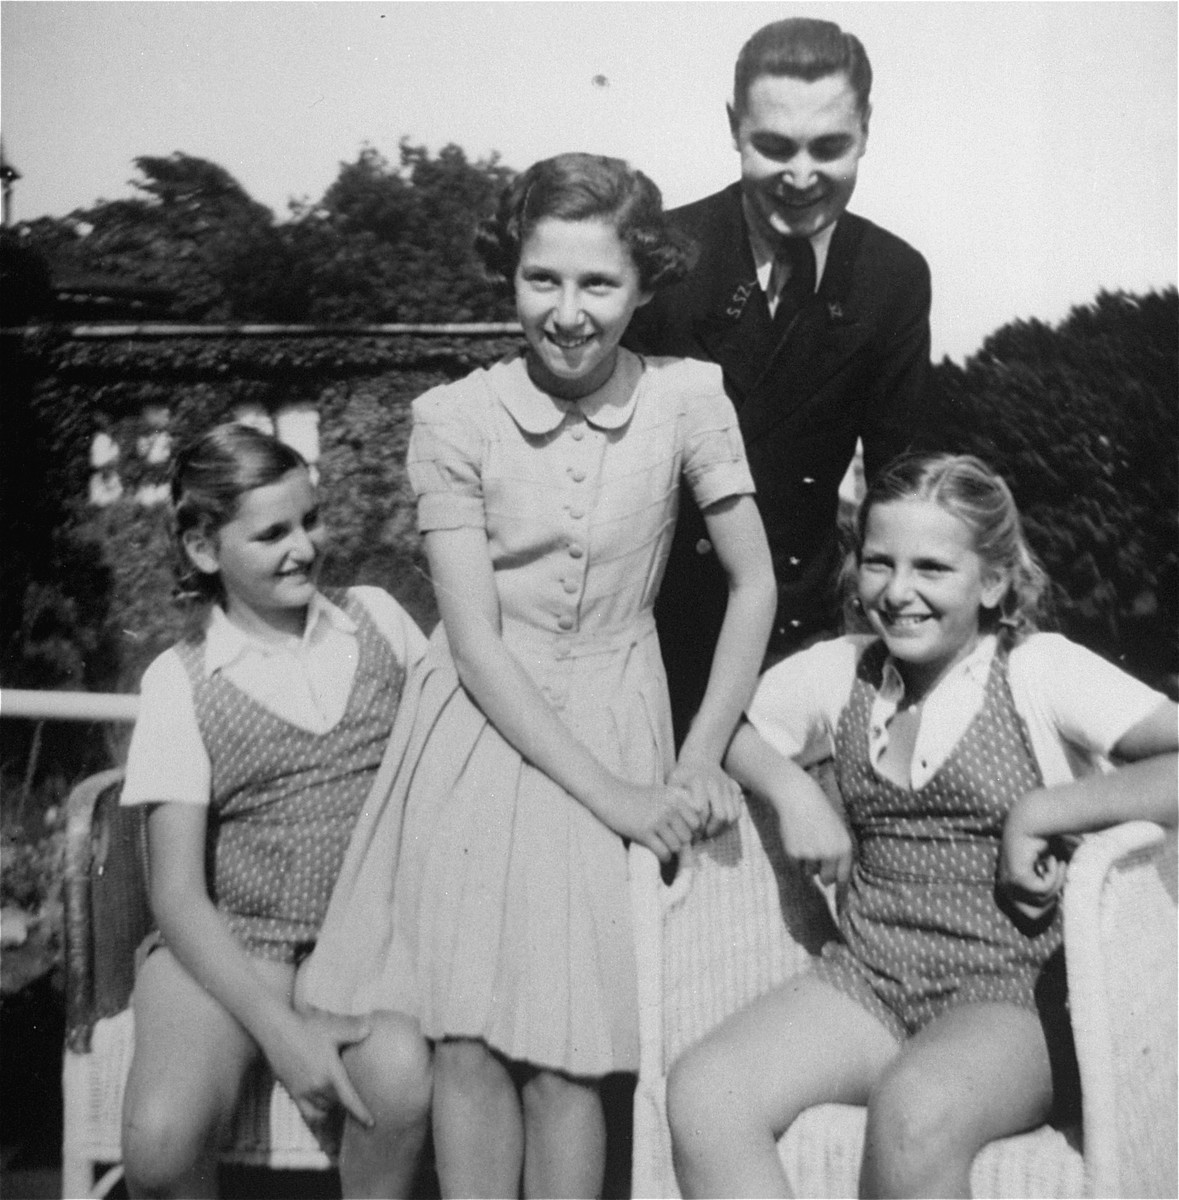 Dorottya (Dolly) Dezsoefi, far left, and her twin sister, Ida Marianne (Mari), with Mr. Zimmermann and his daughter at a resort hotel.    The Zimmermanns did not survive the war.